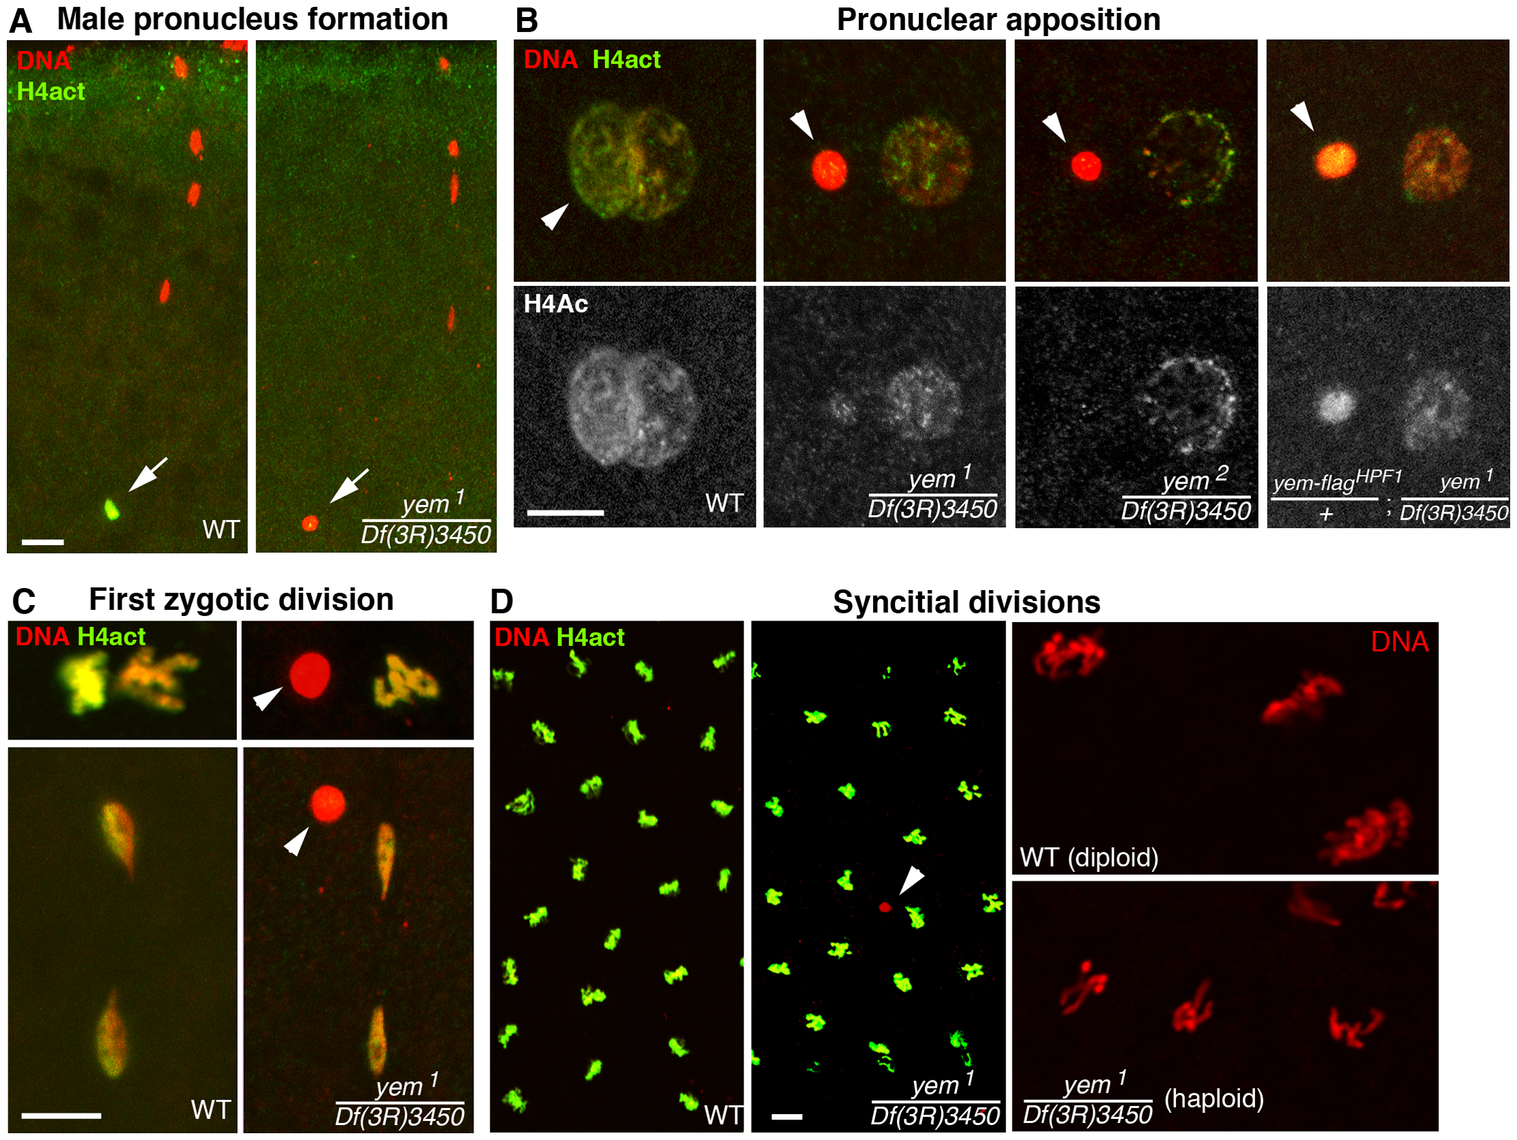 YEM is essential for chromatin assembly in the male pronucleus at fertilization.